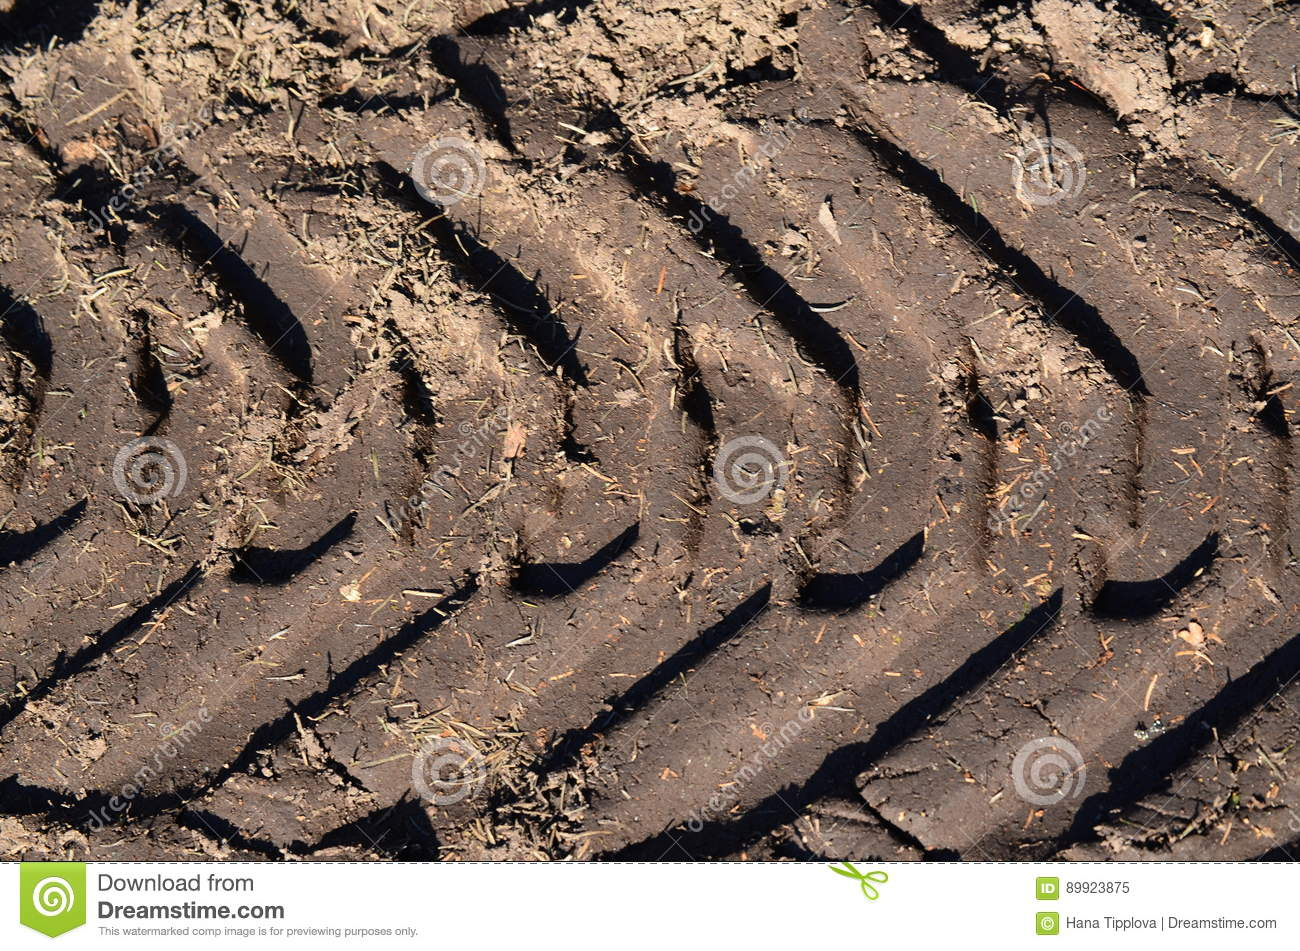 Tire tracks in the dirt